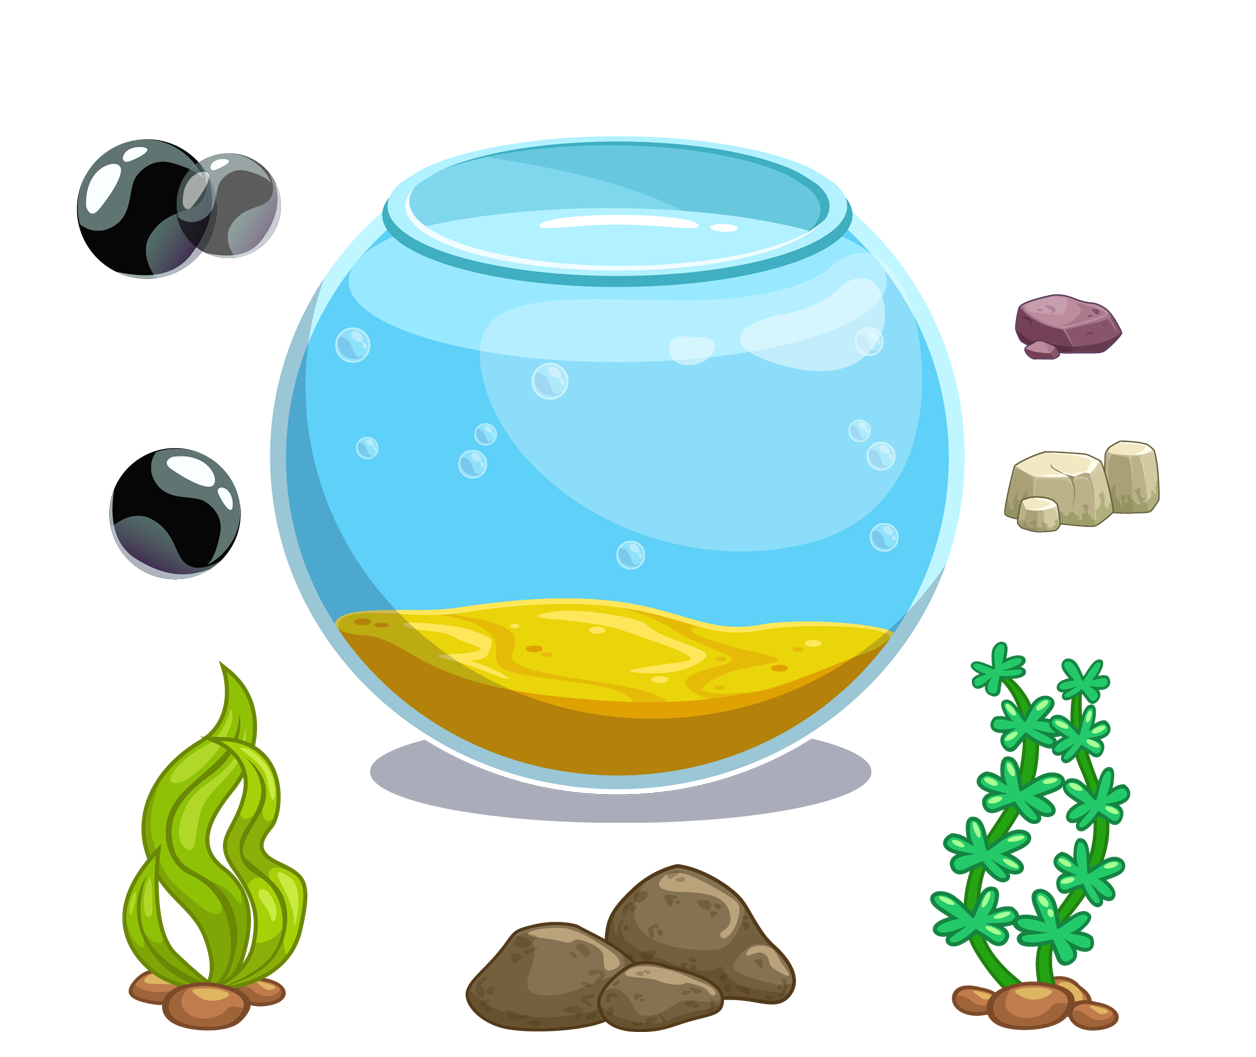 Fish tank decorations clipart svg transparent library Cartoon Aquarium Icon - Cartoon fish tank 1256*1057 transprent Png ... svg transparent library